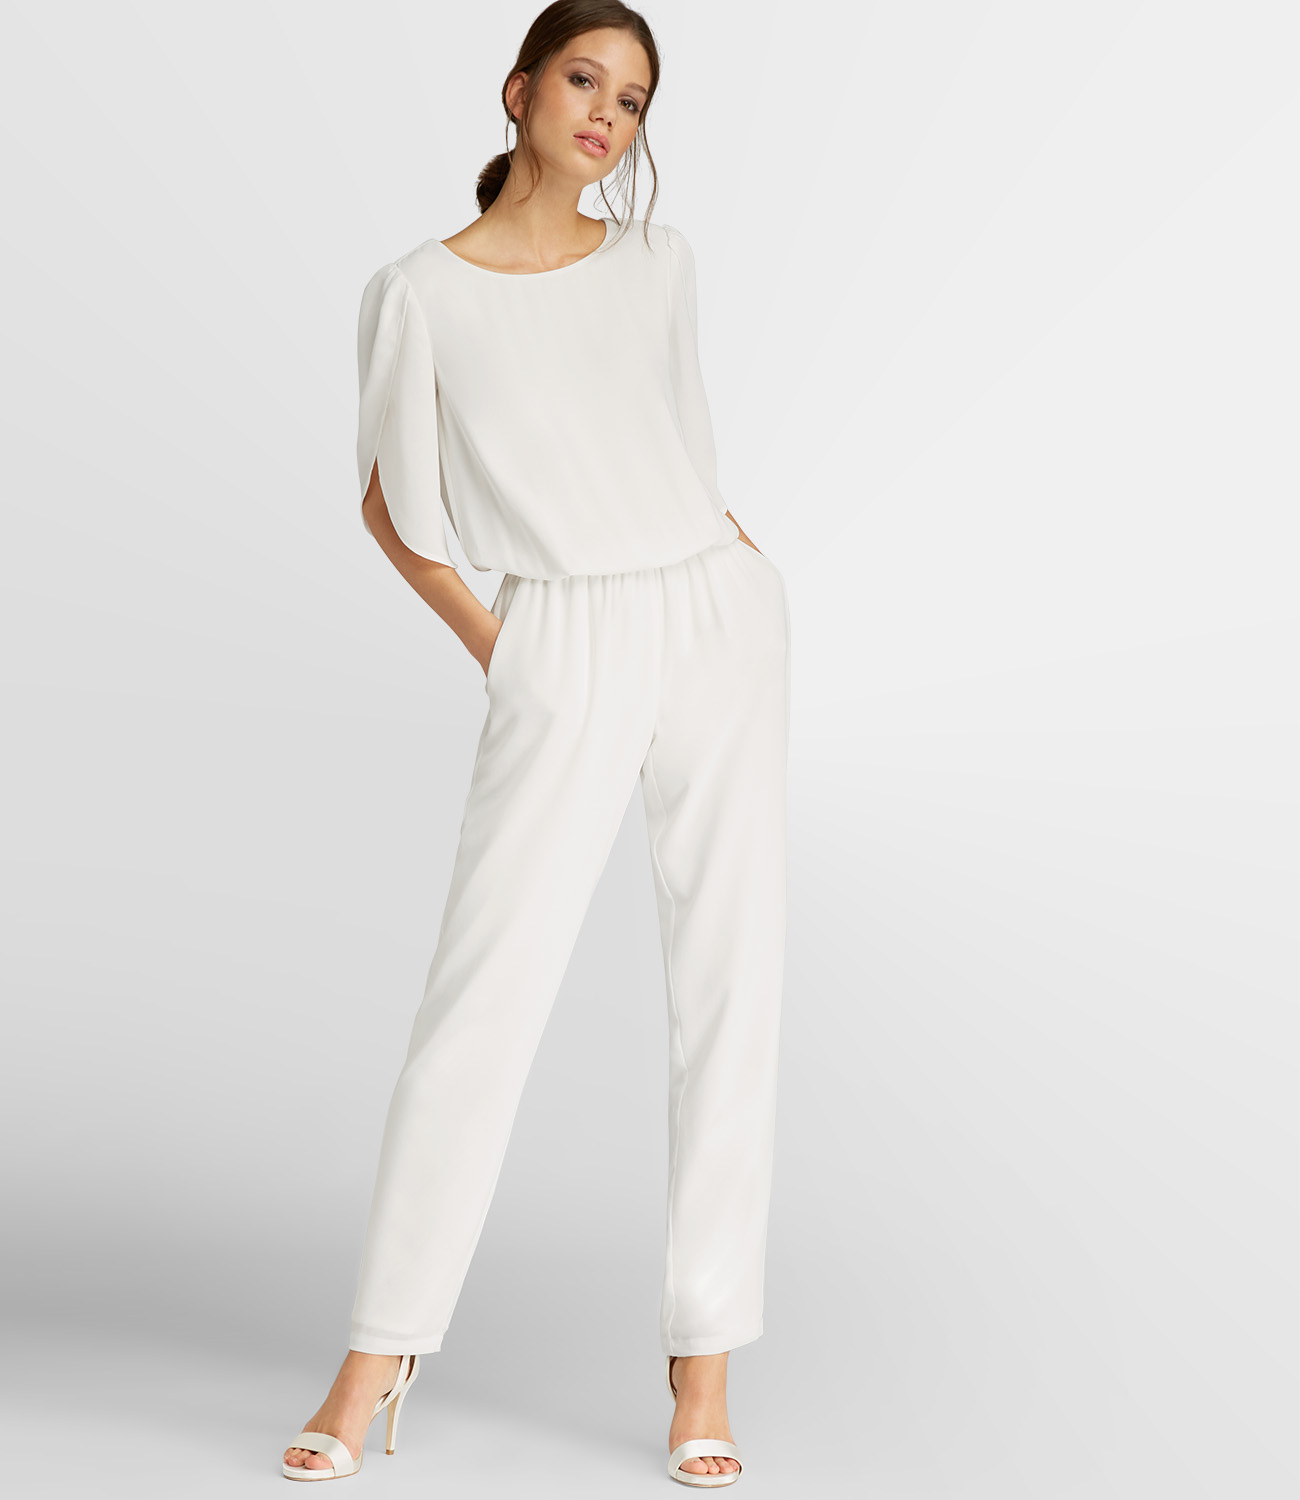 c6194aab37fd22 Overall in Weiß | APART Fashion